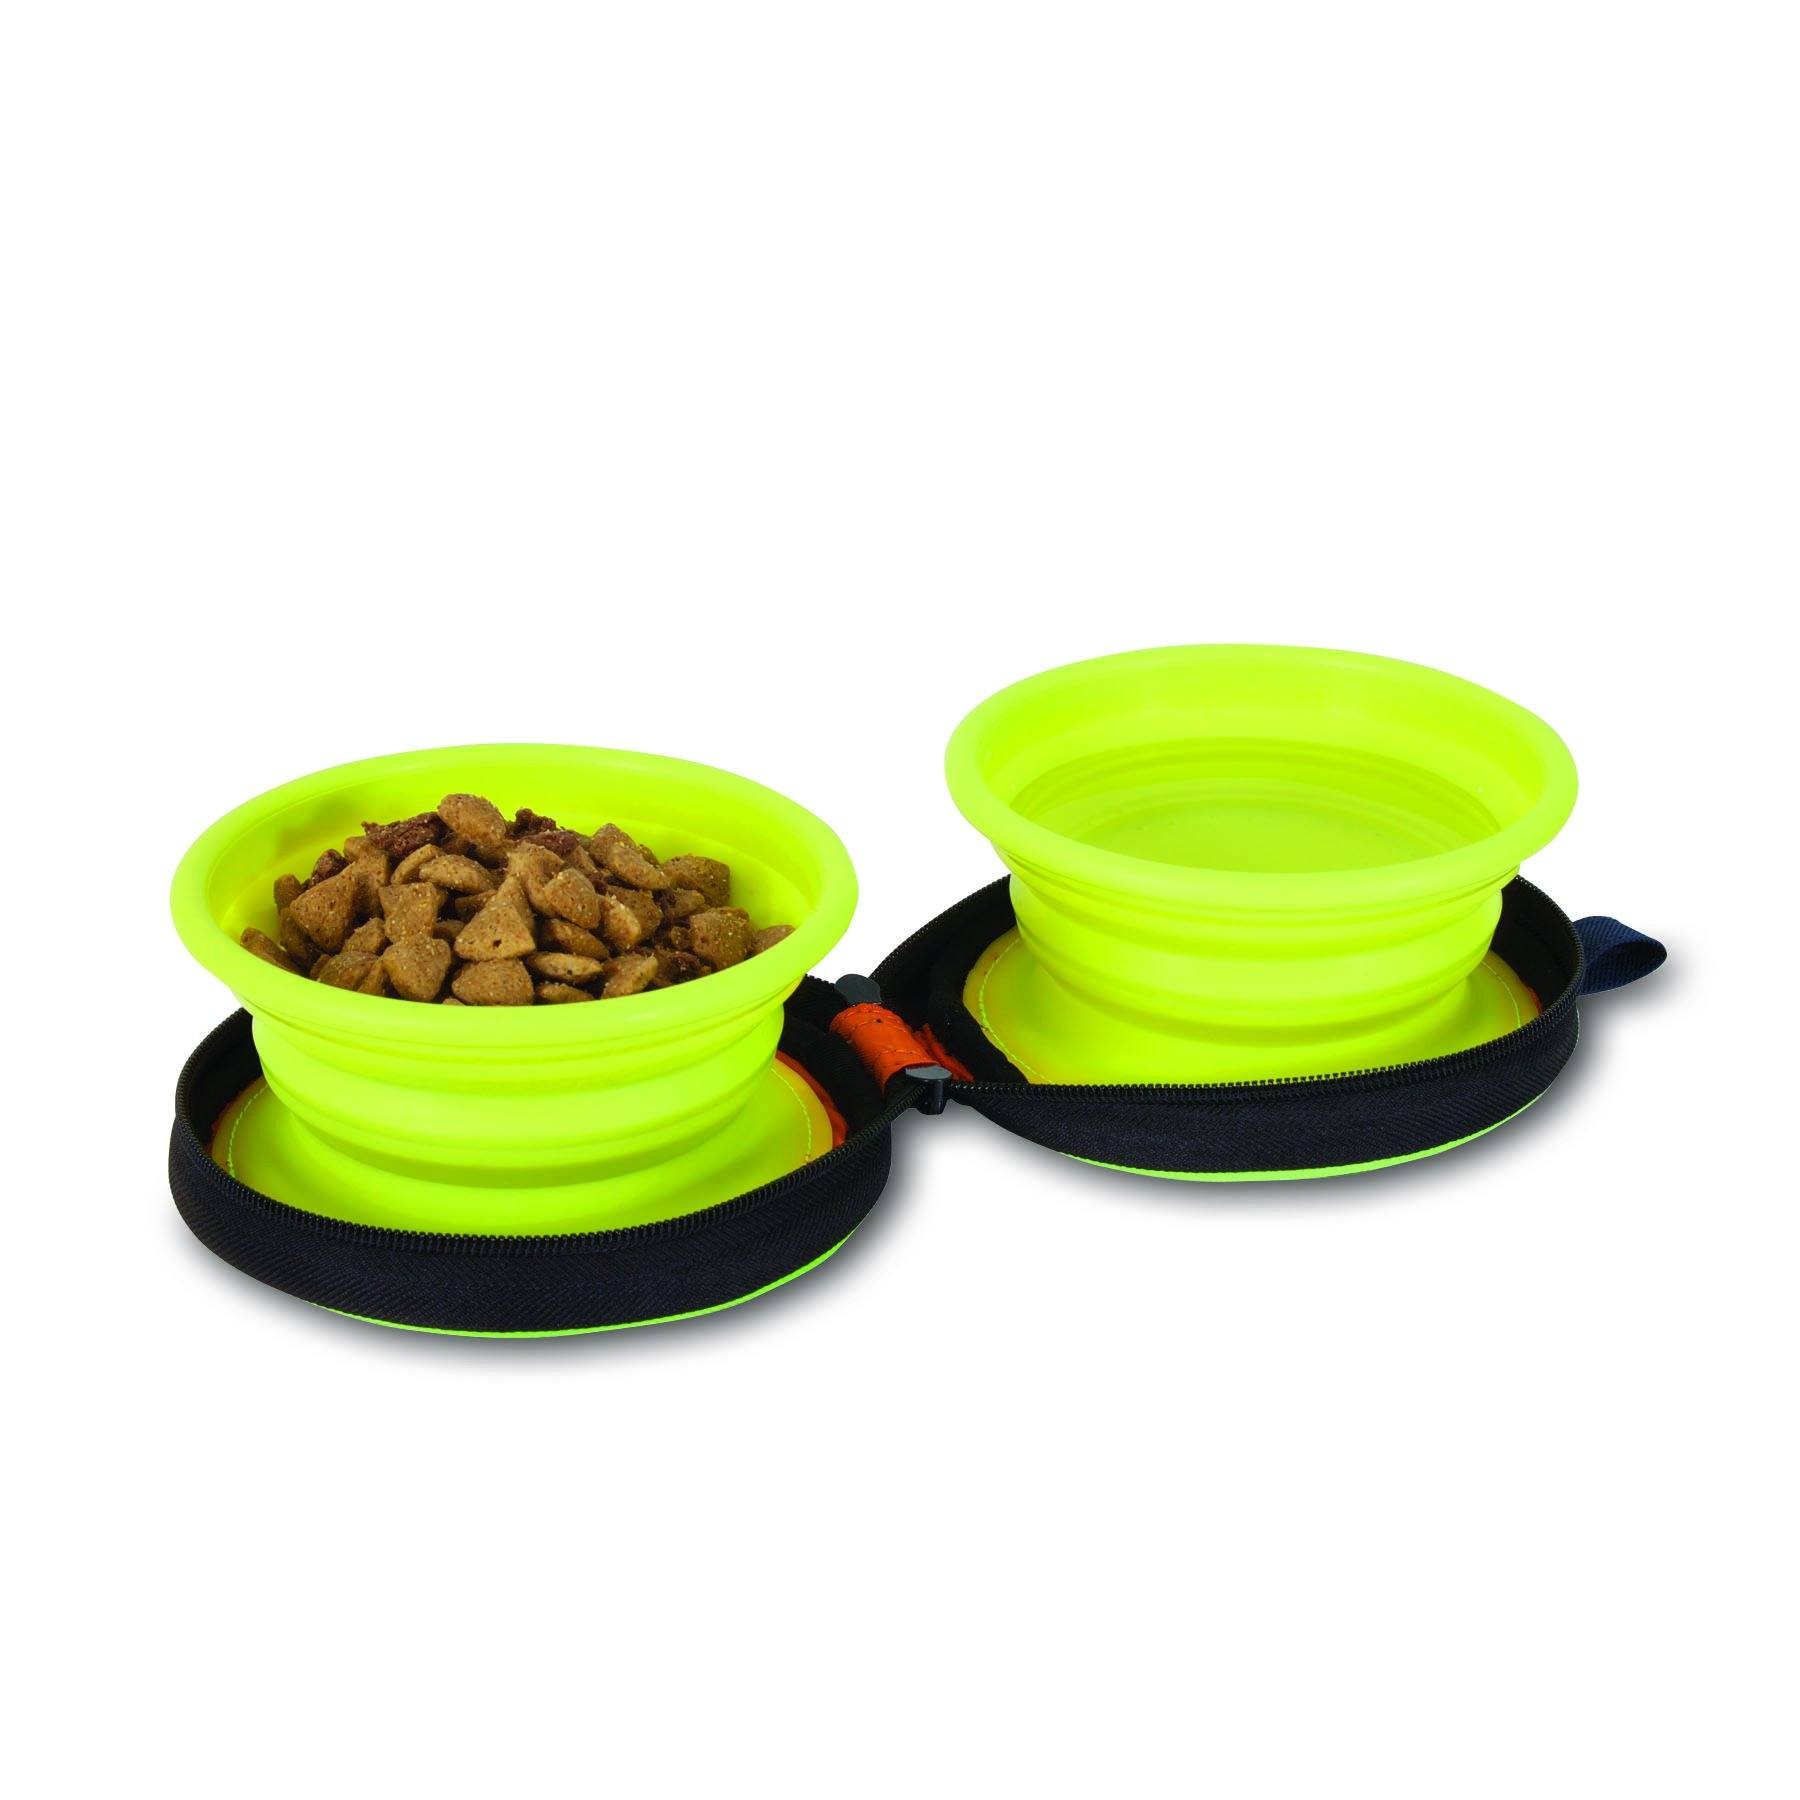 Petmate 3-Cup Silicone Duo Travel Bowl by Petmate (Image #4)